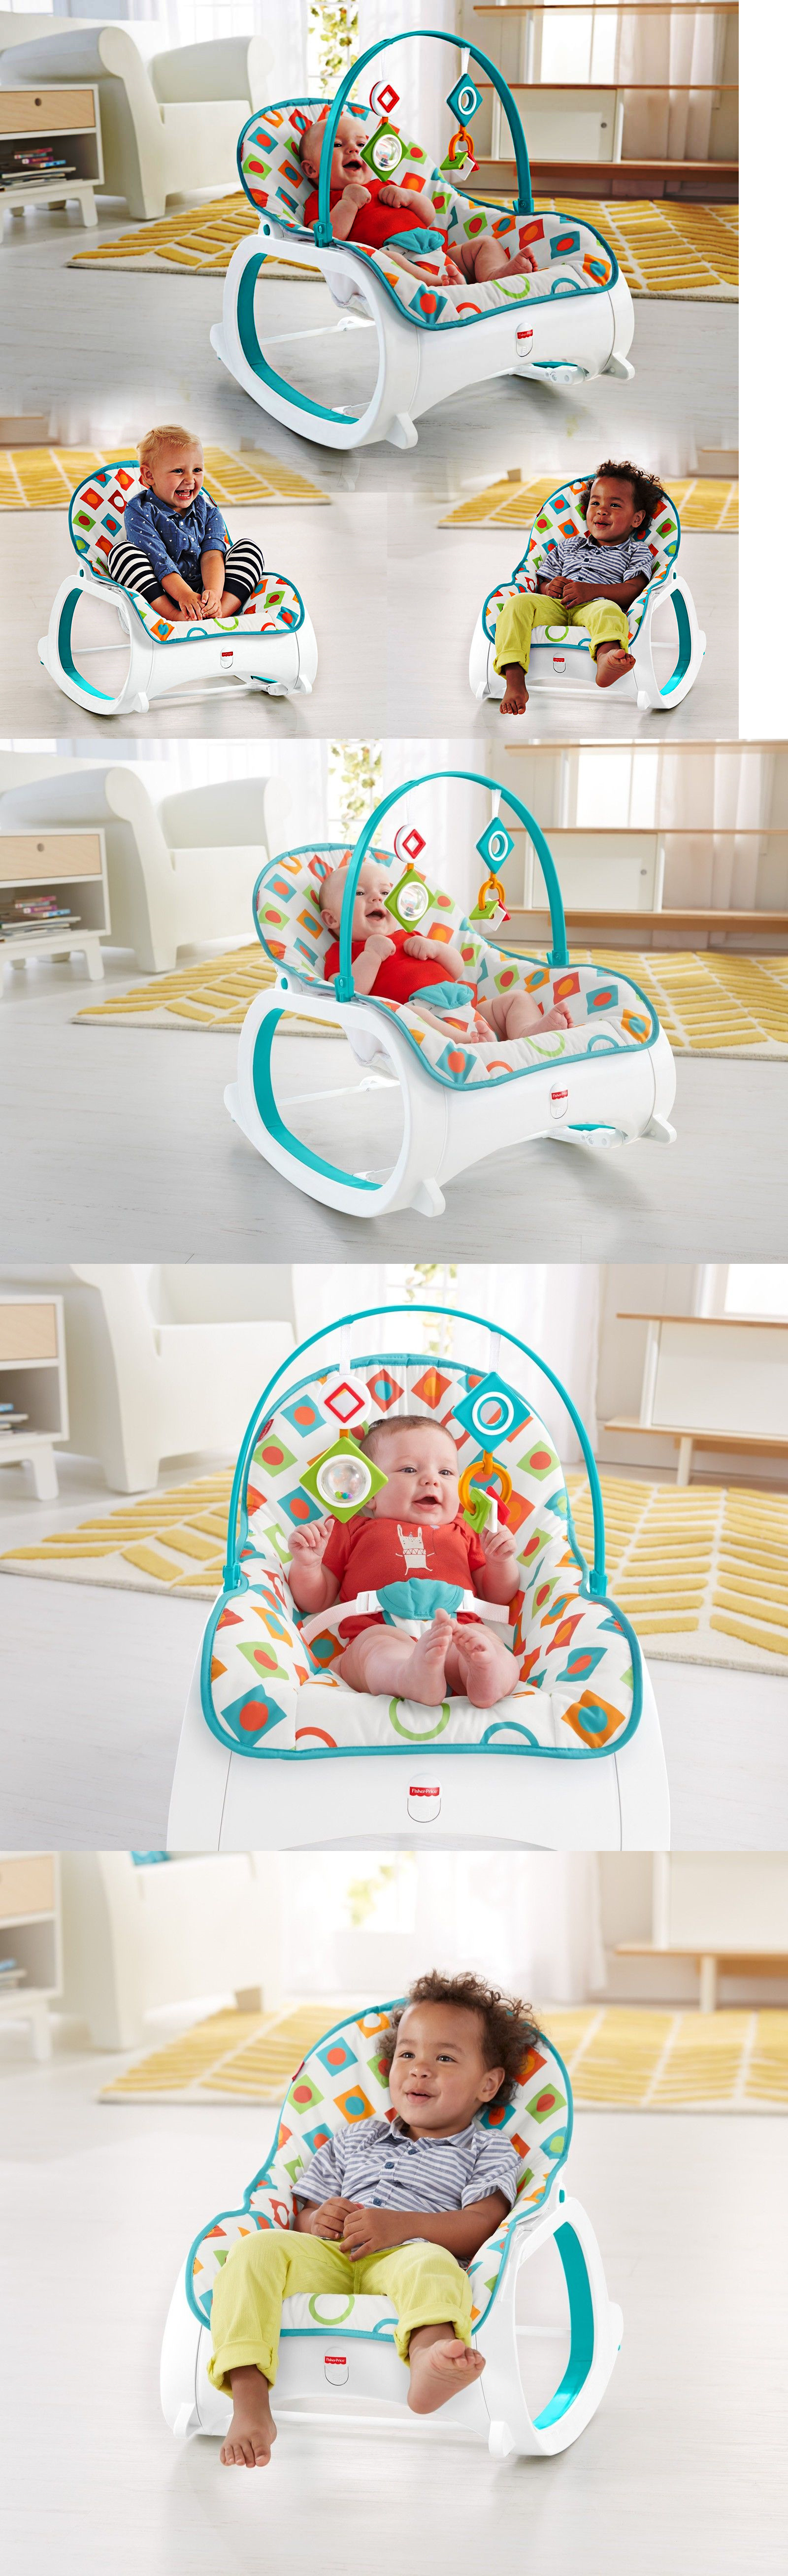 Baby and kid stuff new infant to toddler rocker bouncer seat baby